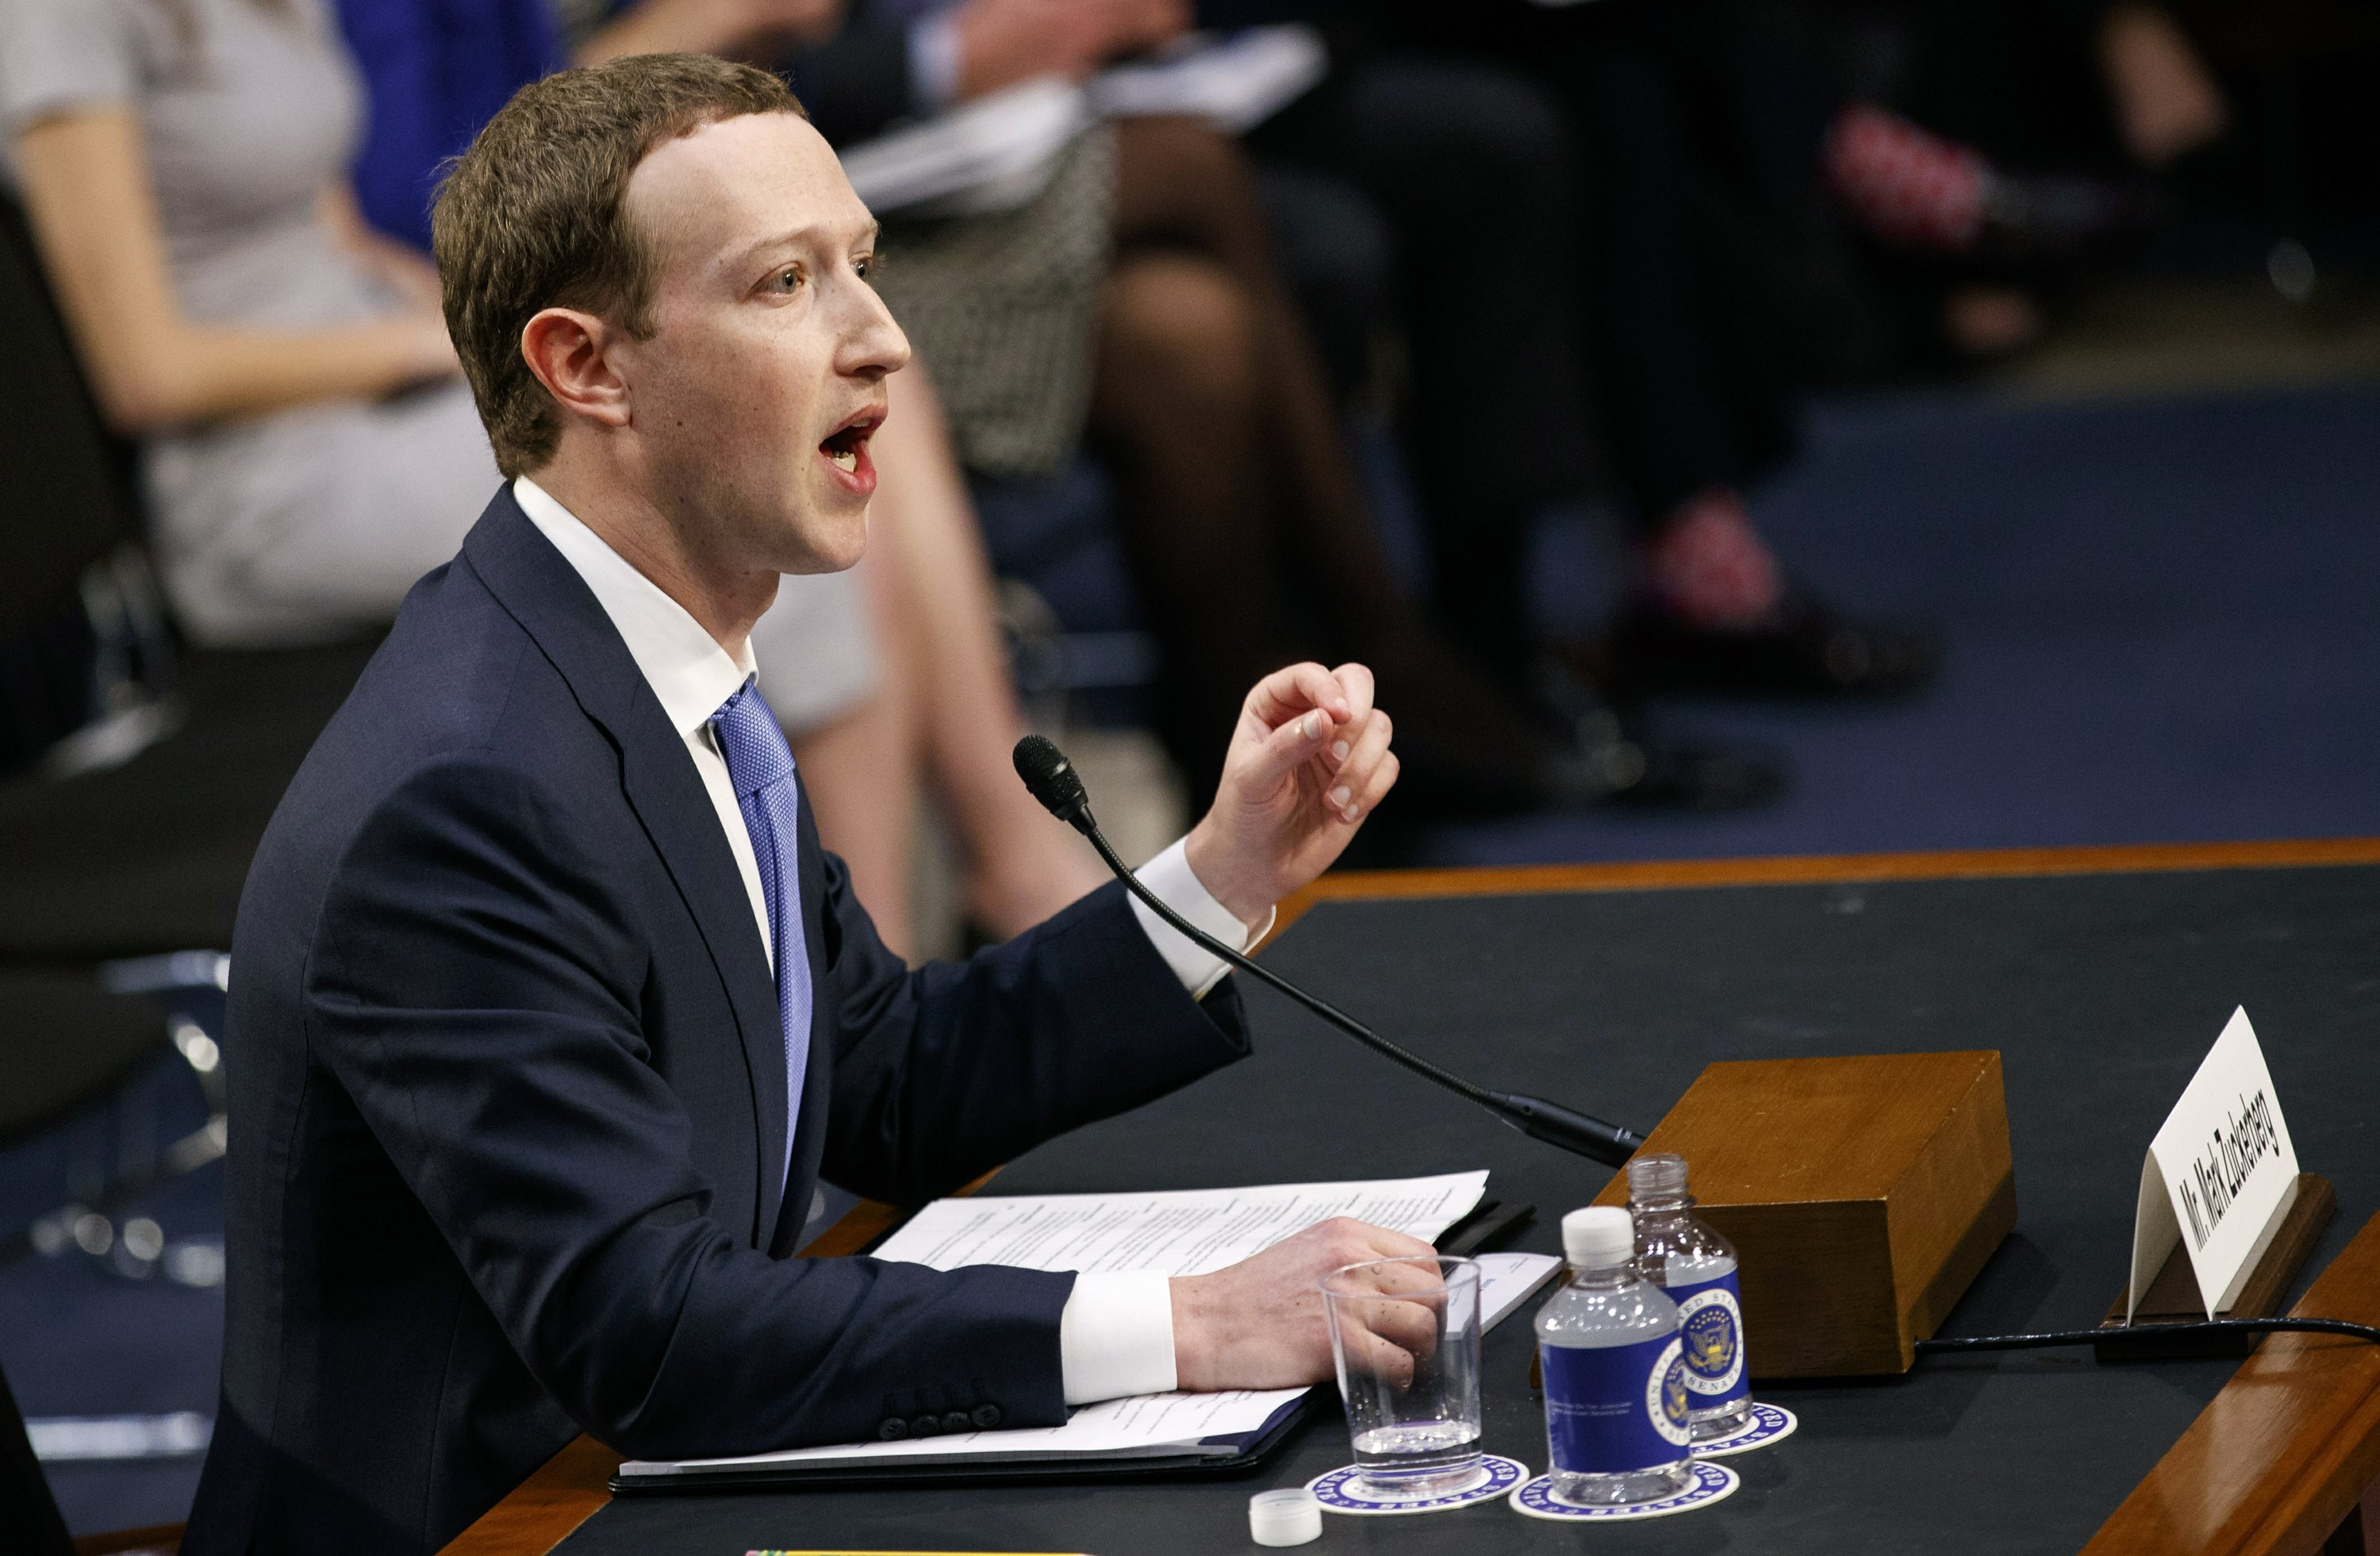 The Latest: Zuckerberg ends Day 2 of grilling by Congress